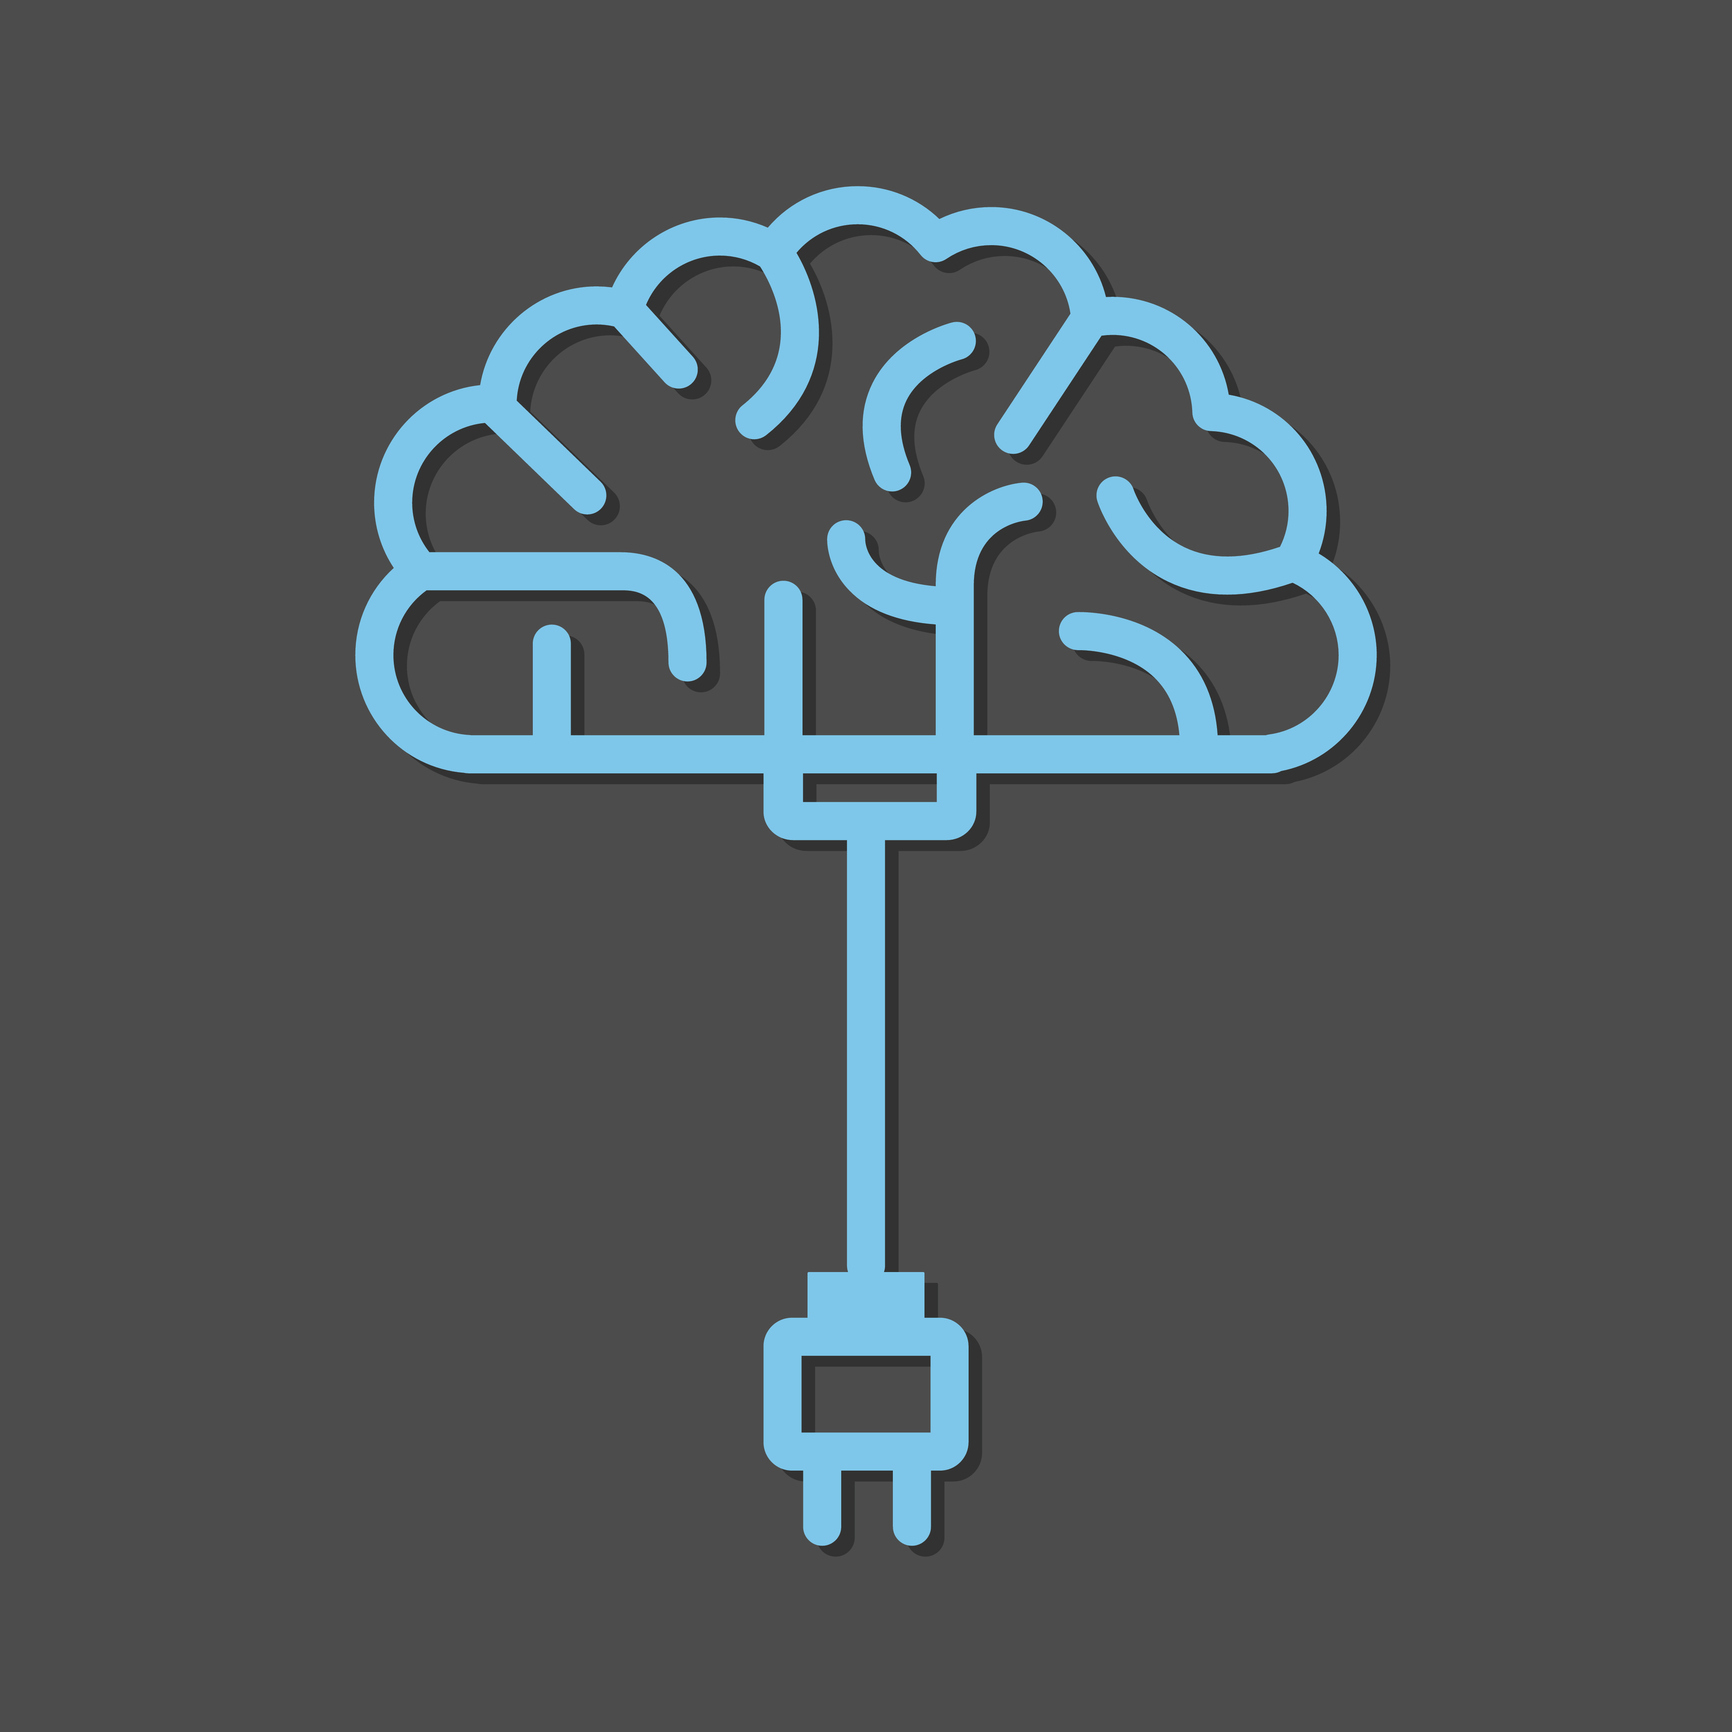 Diagram of a brain with charging cable attached